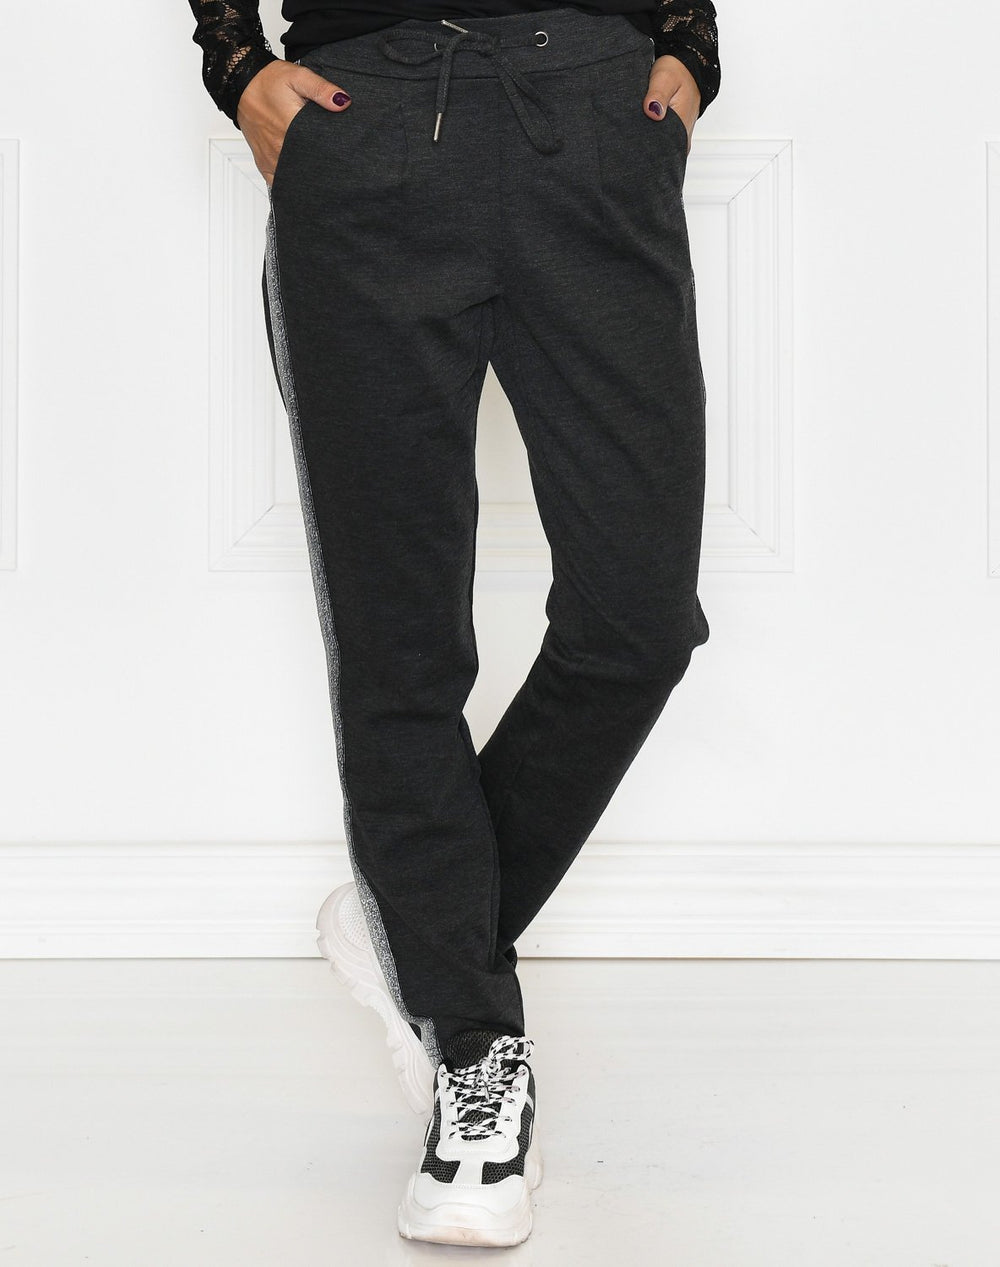 B.Young BYrizetta deco pants 2 dark grey melange - Online-Mode